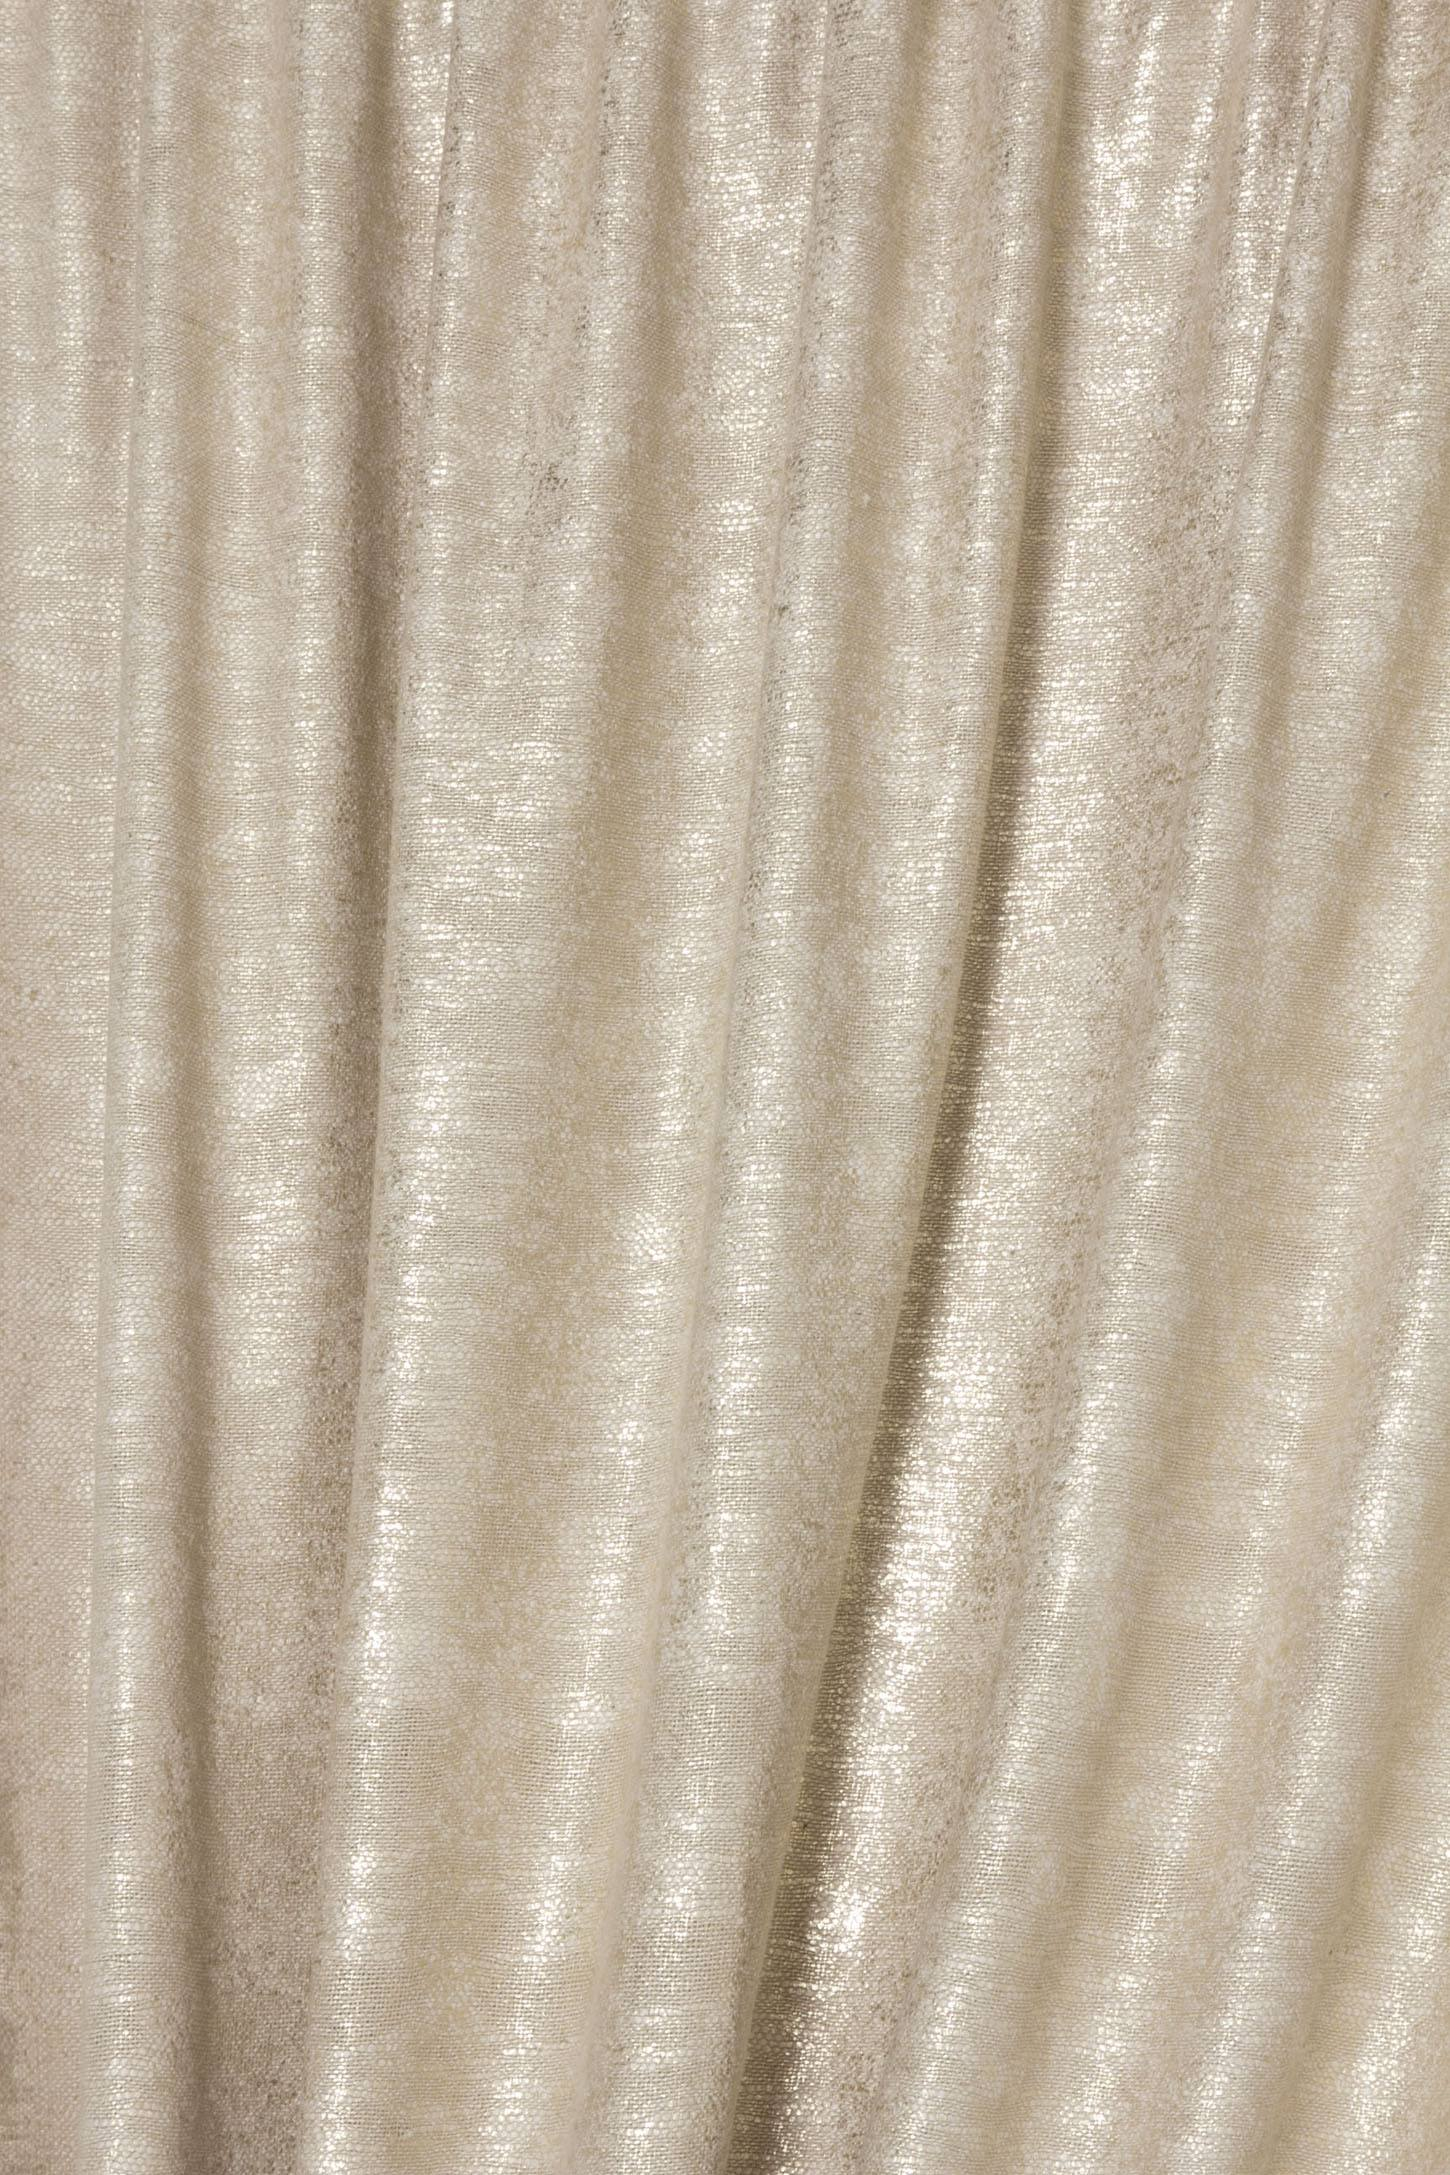 Slide View: 4: Gilded Waves Curtain